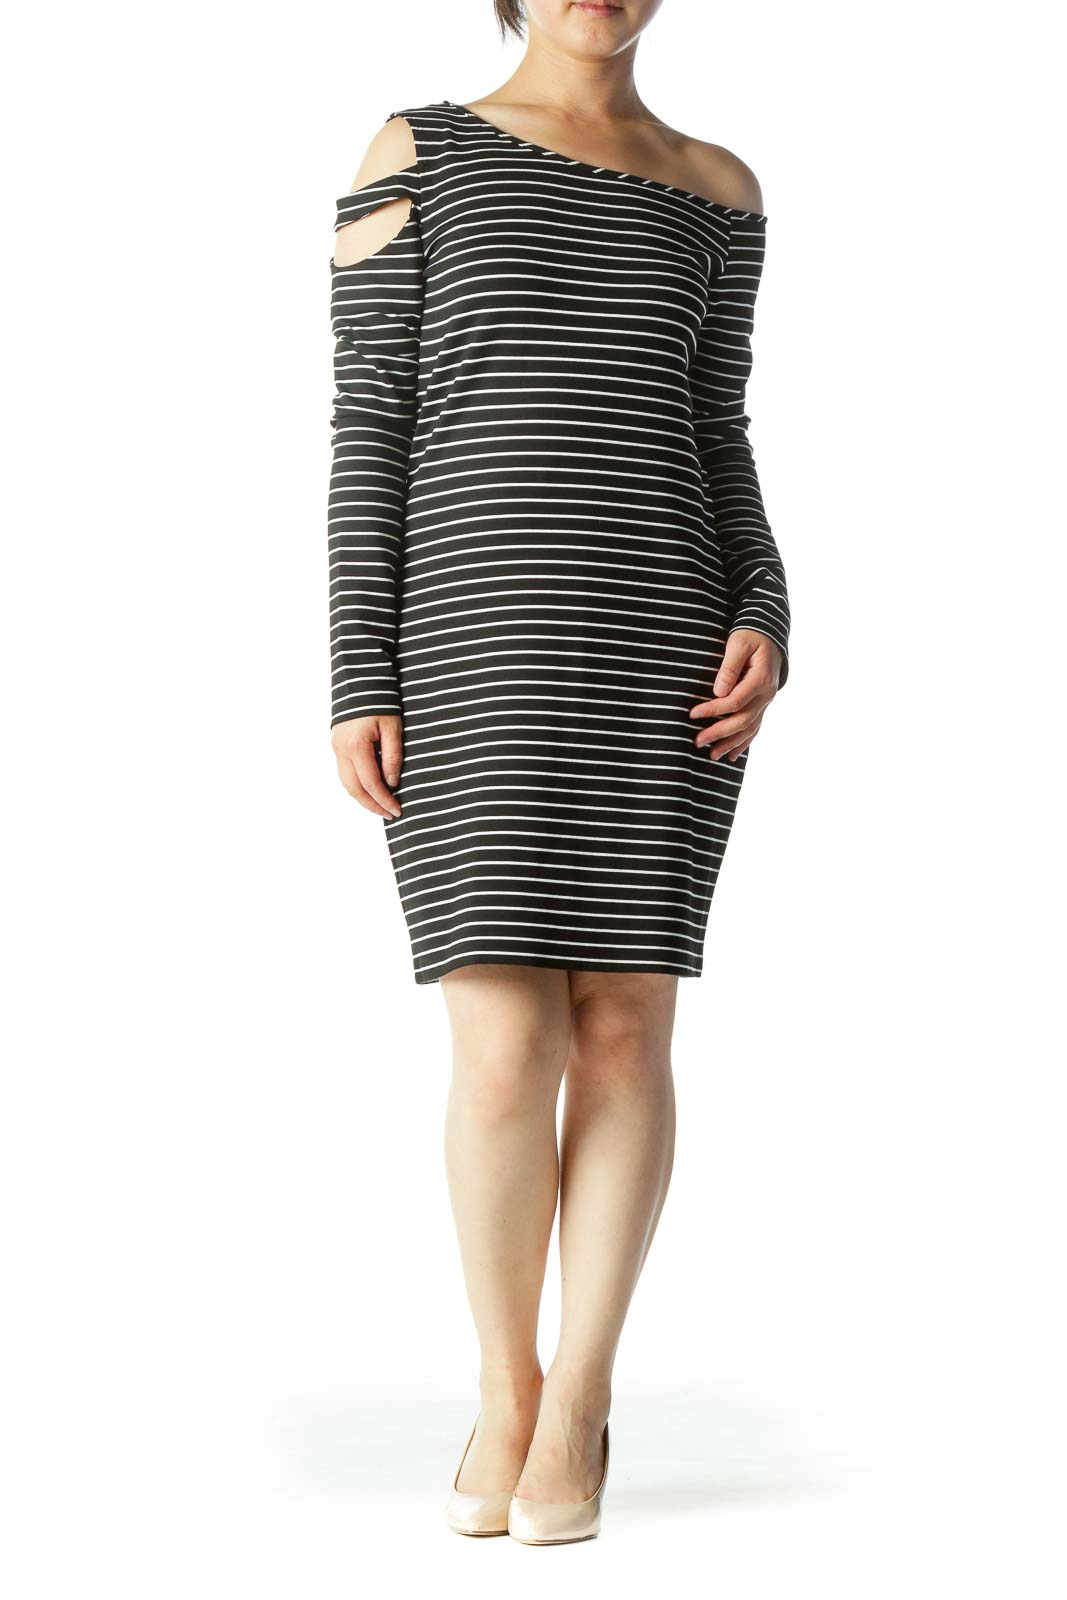 Black & White Striped Long-Sleeve Off-Shoulder Cut-Out Knit Dress